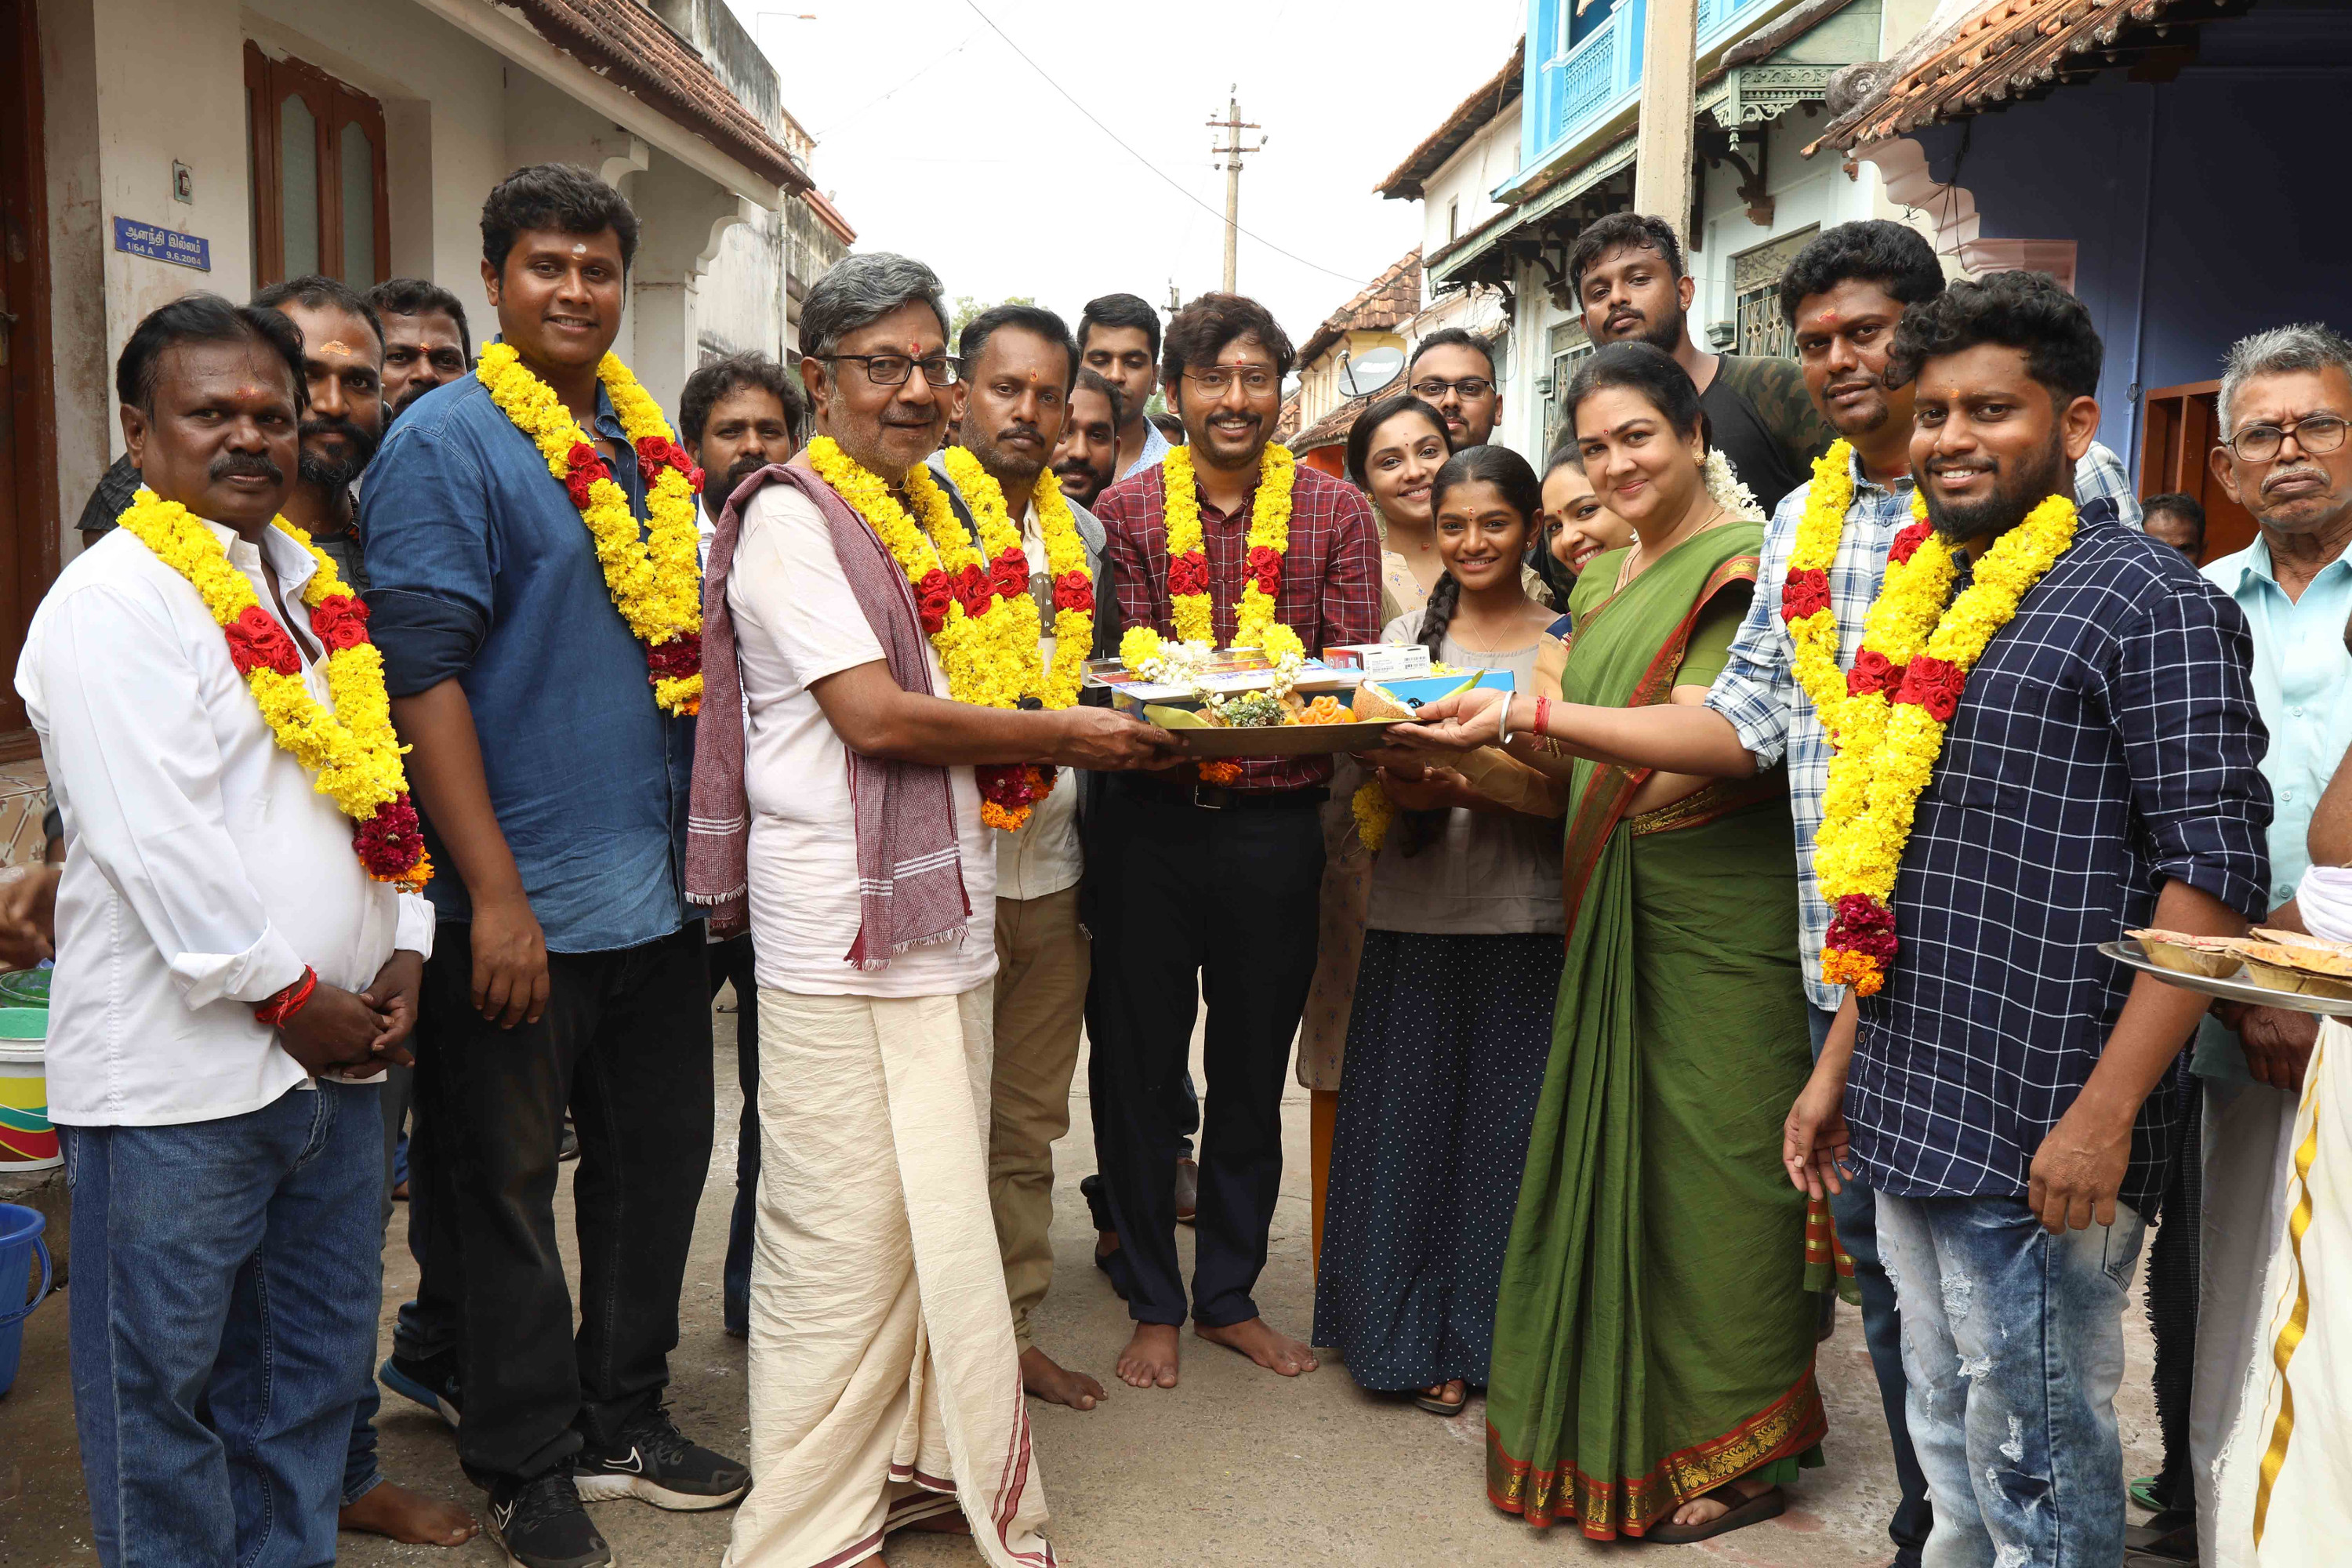 Nayanthara RJ Balaji starrer 'Mookuthi Amman' movie shooting started